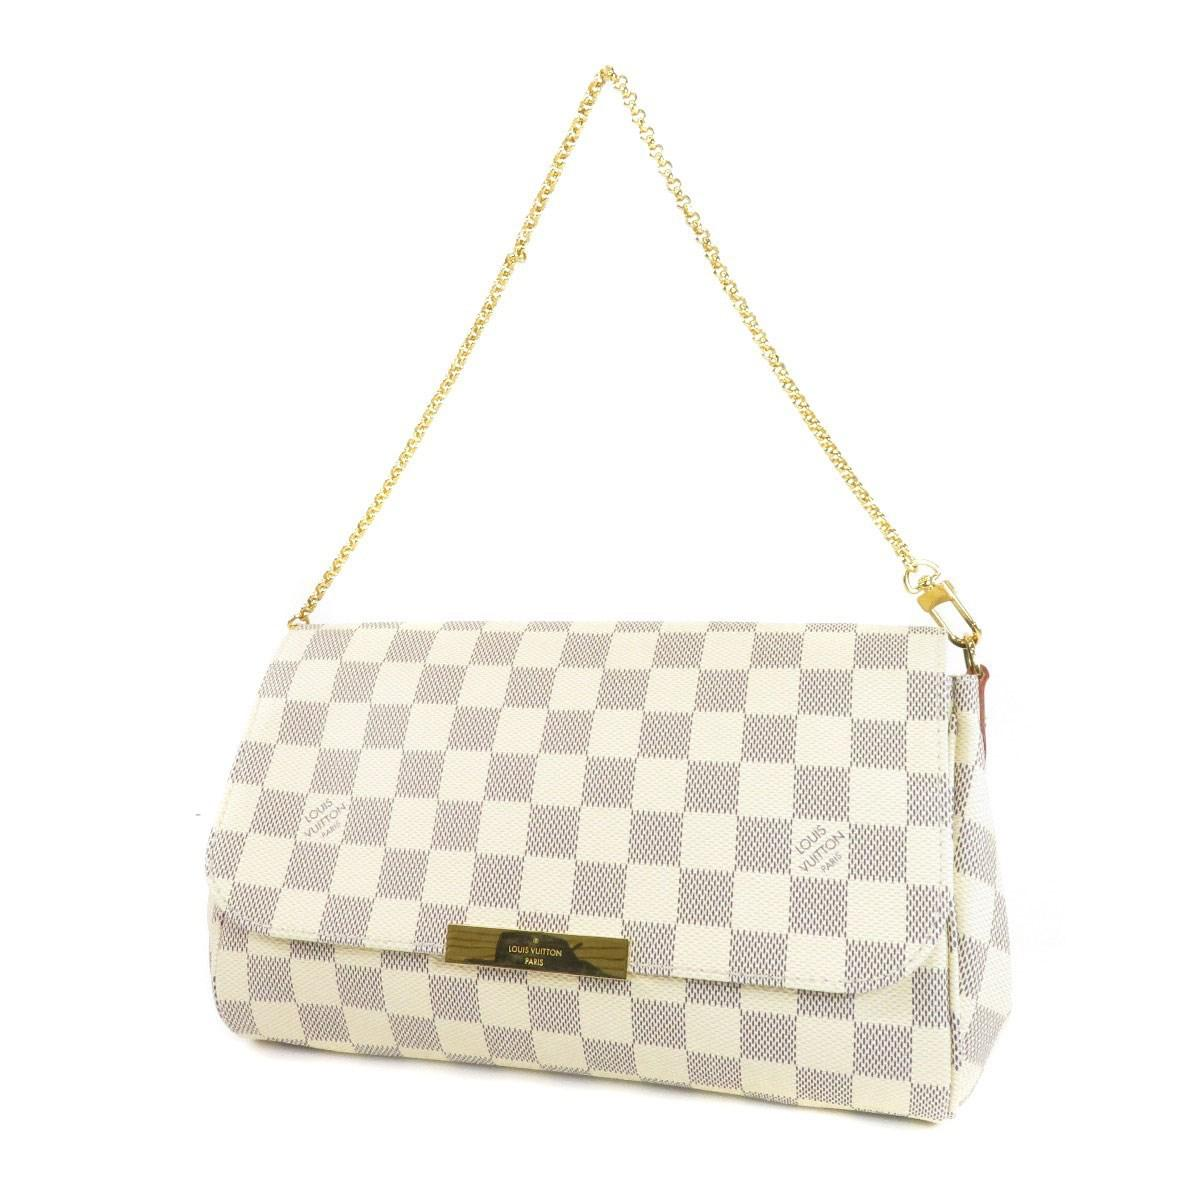 3875b449ee82 Lyst - Louis Vuitton Damier Canvas Shoulder Bag N41275 Favorite Mm ...